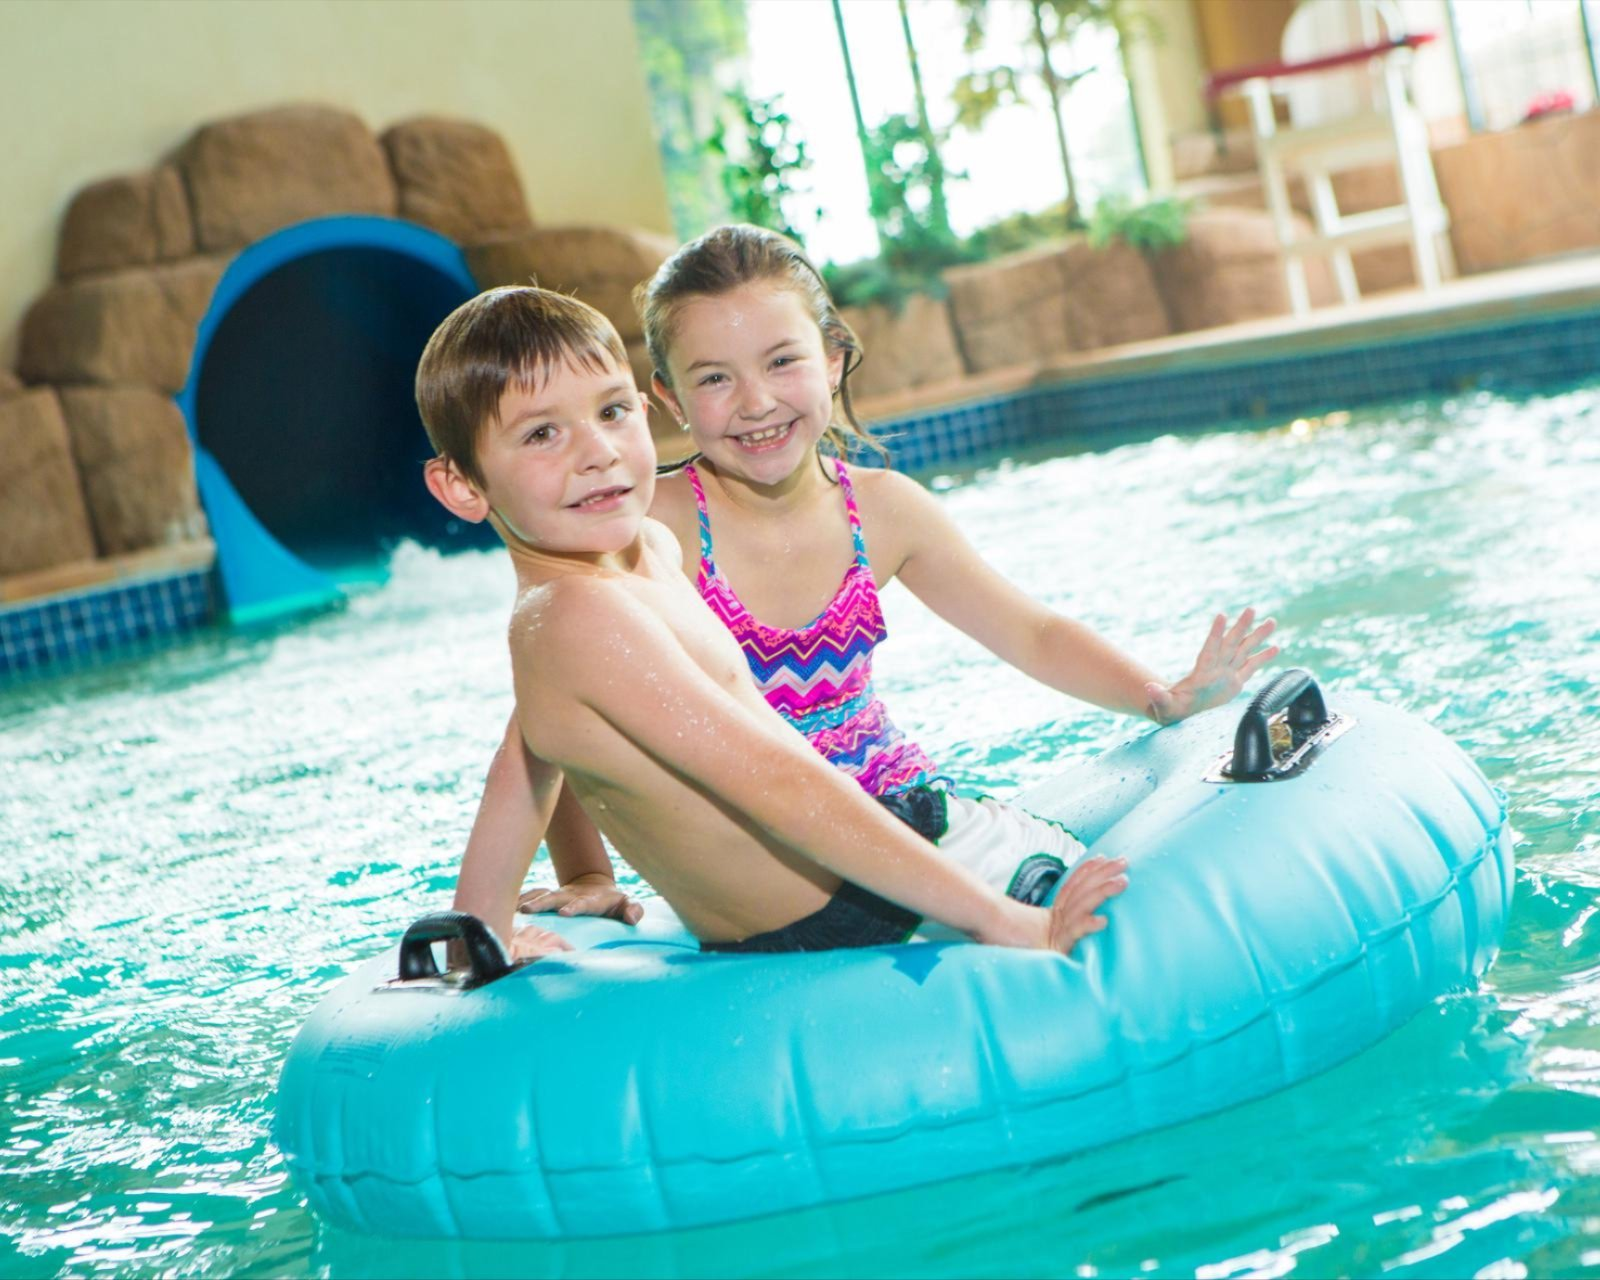 Waterpark fun for the kids at Tundra Lodge Resort and Waterpark